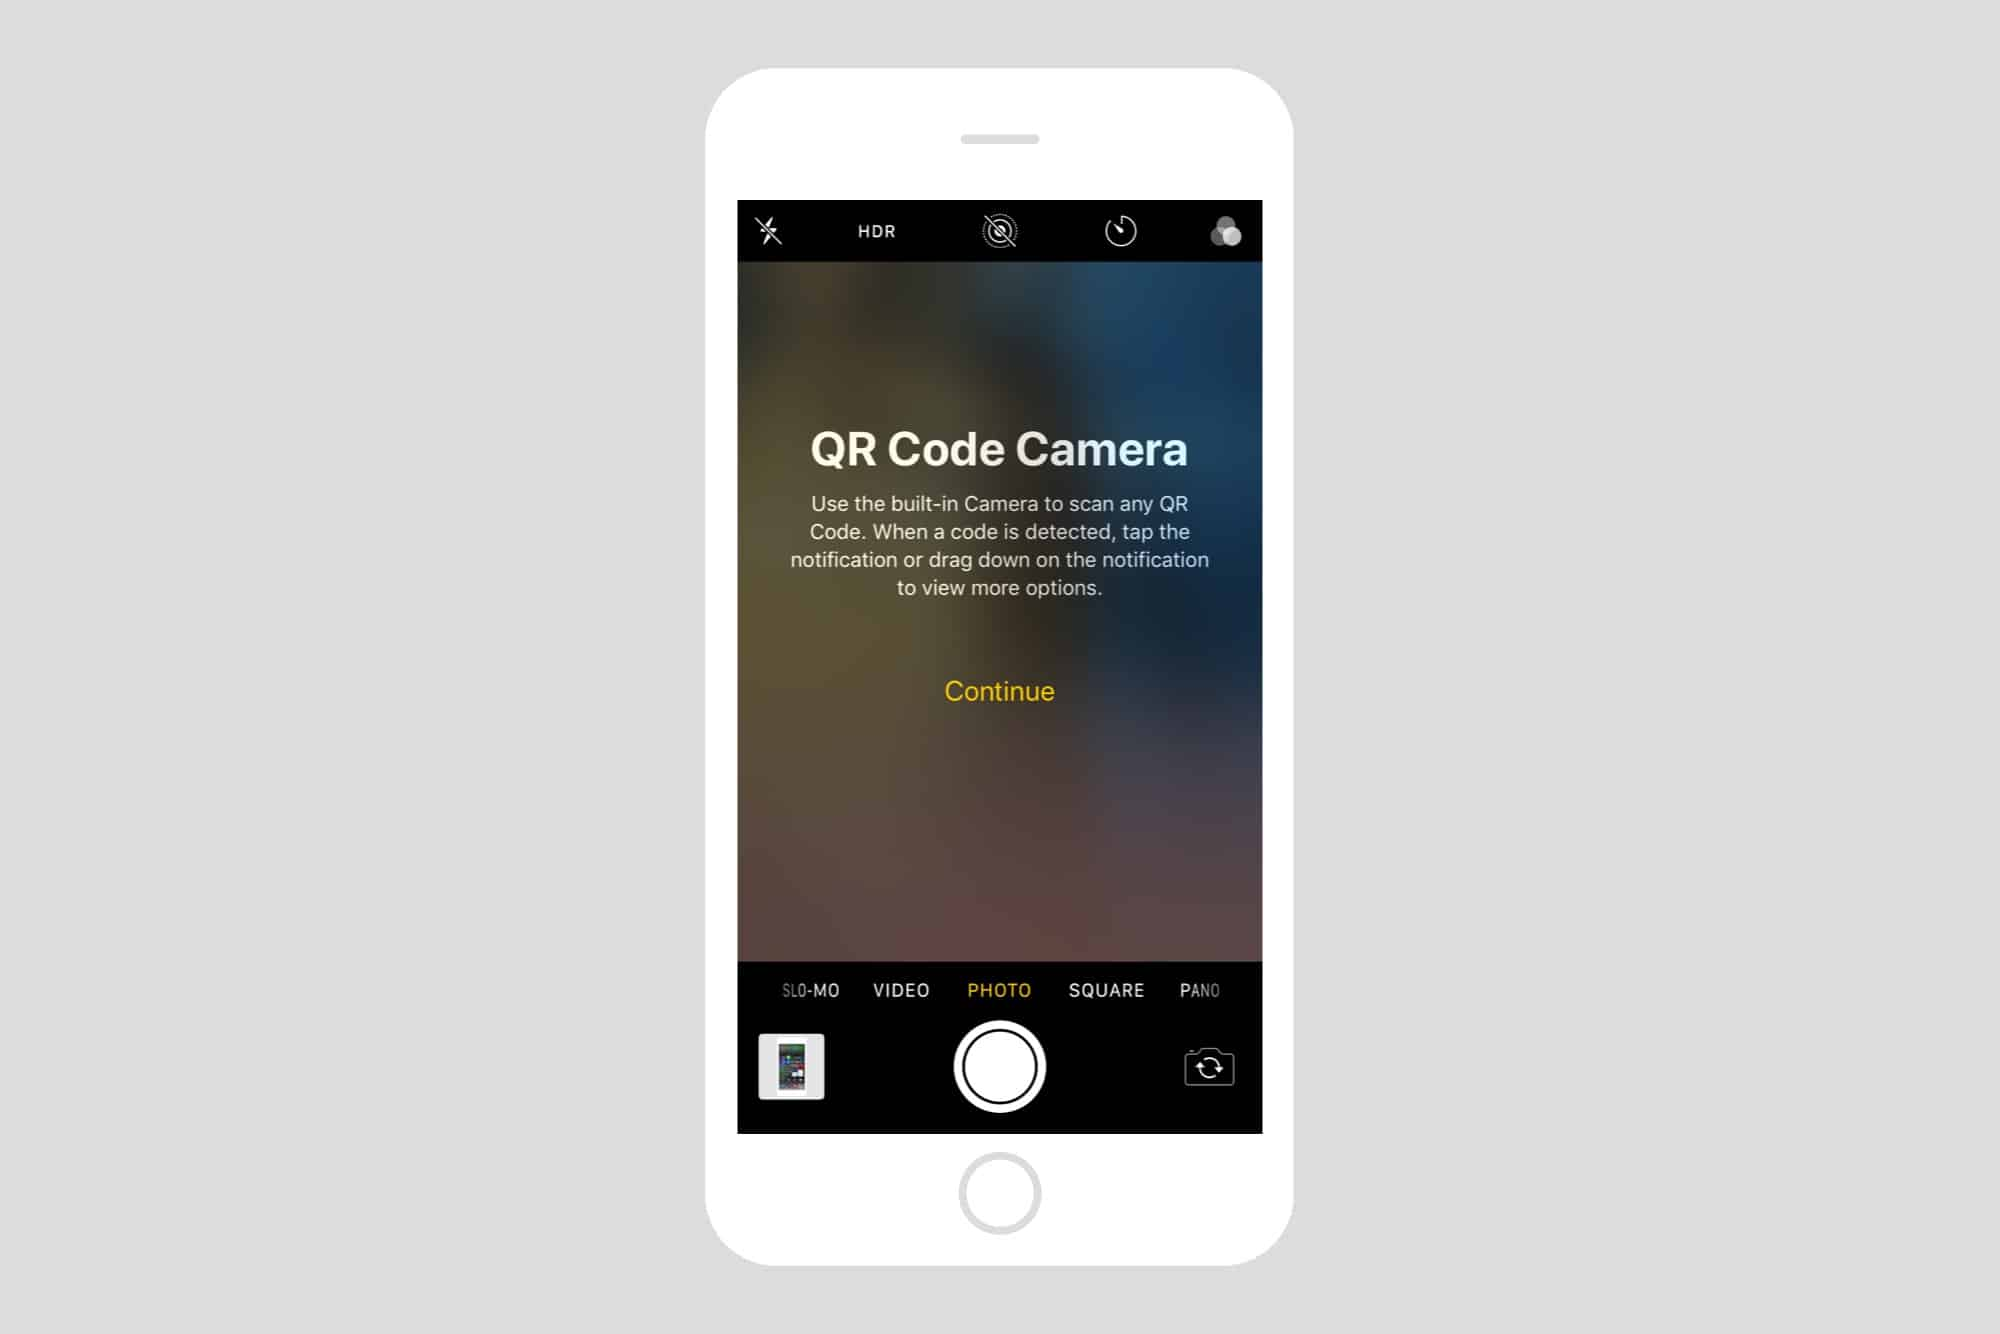 The QR Code camera tells you all about itself and scanning QR codes.